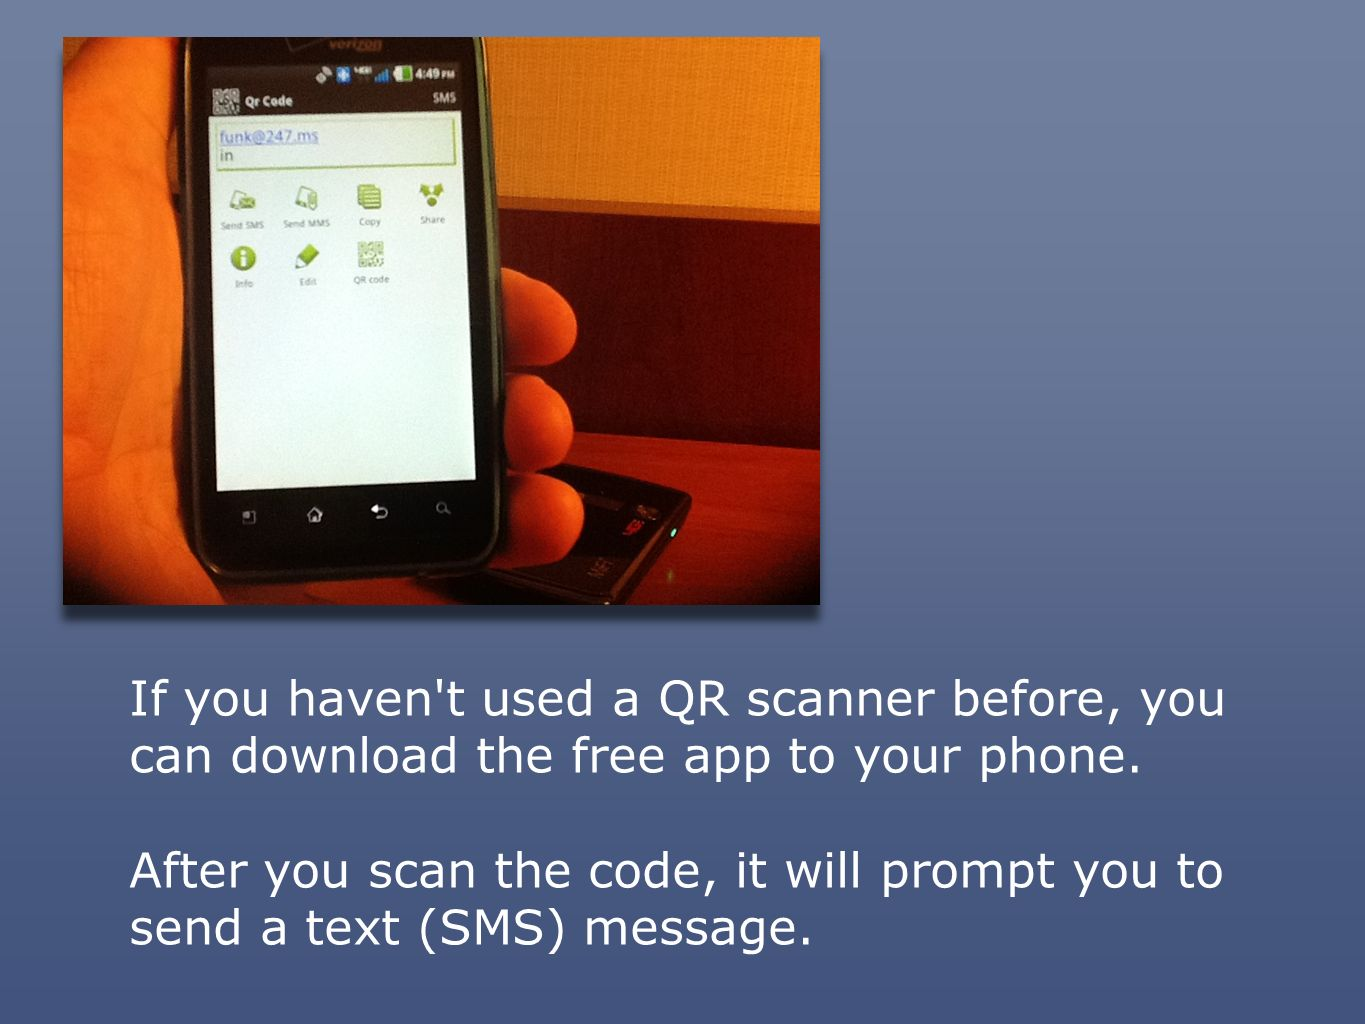 If you haven t used a QR scanner before, you can download the free app to your phone.